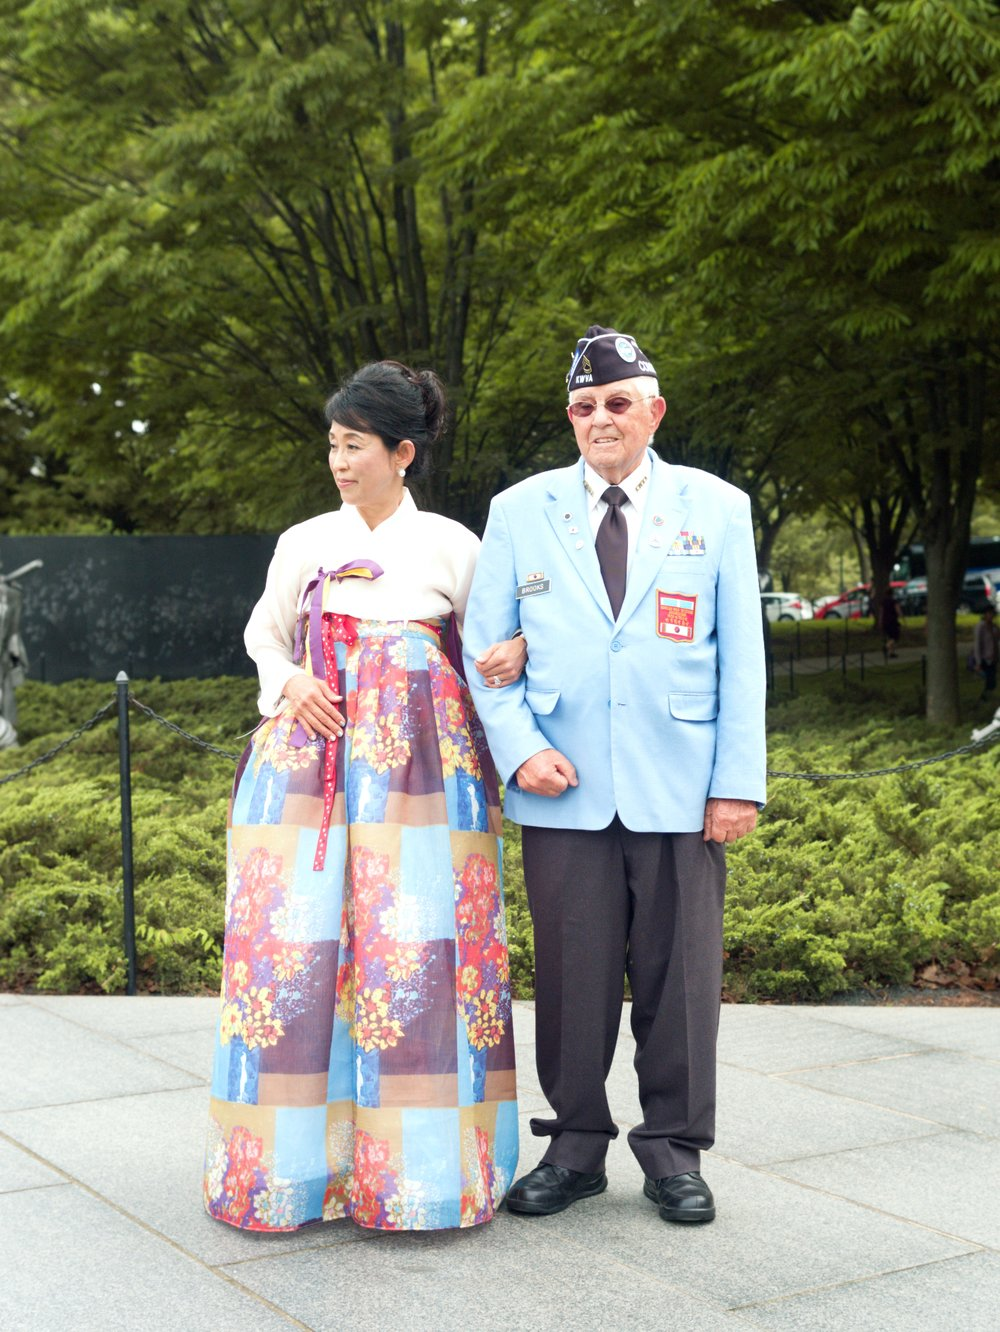 Memorial Program at the Korean War Memorial